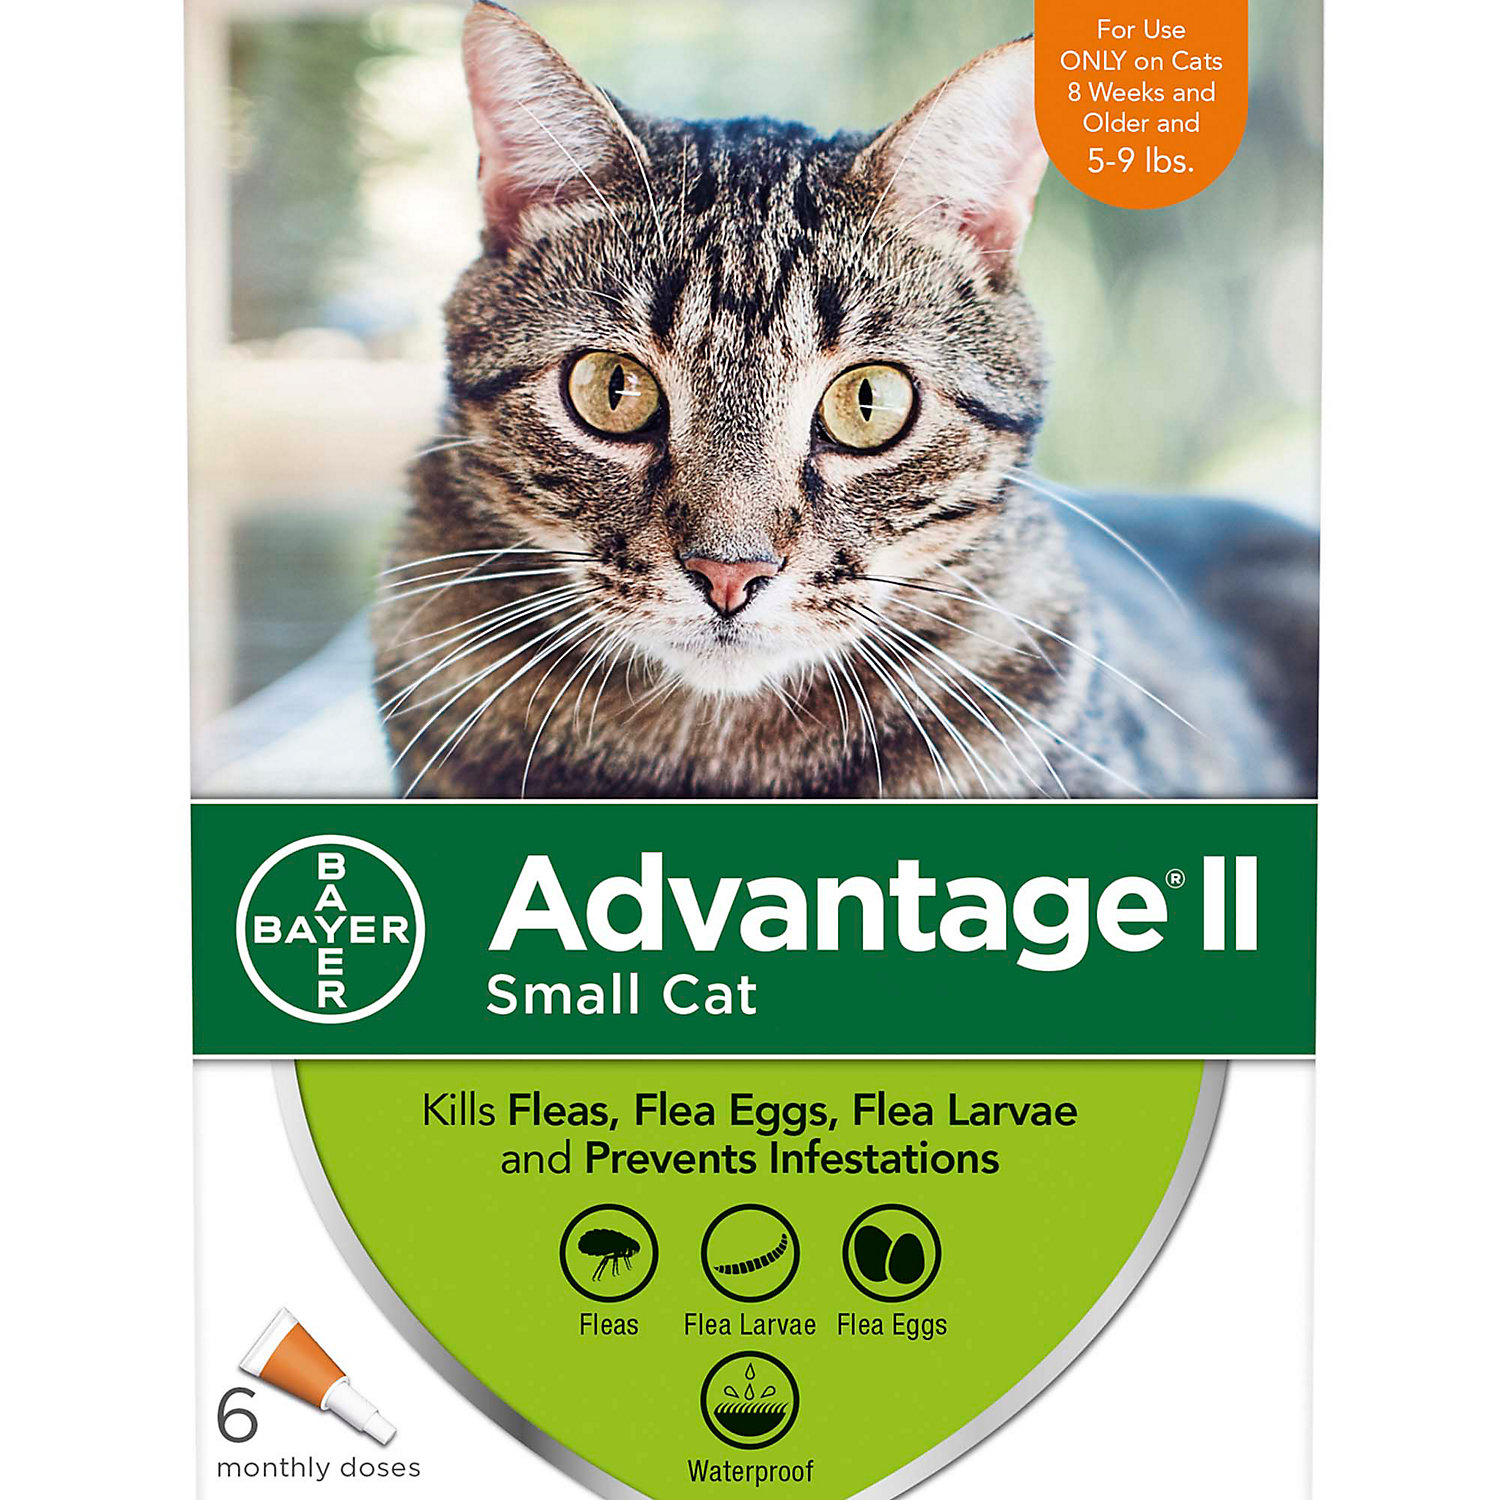 Advantage Ii Once A Month Topical Small Cat Flea Treatment 6 Mo. 5 To 9 Lbs.